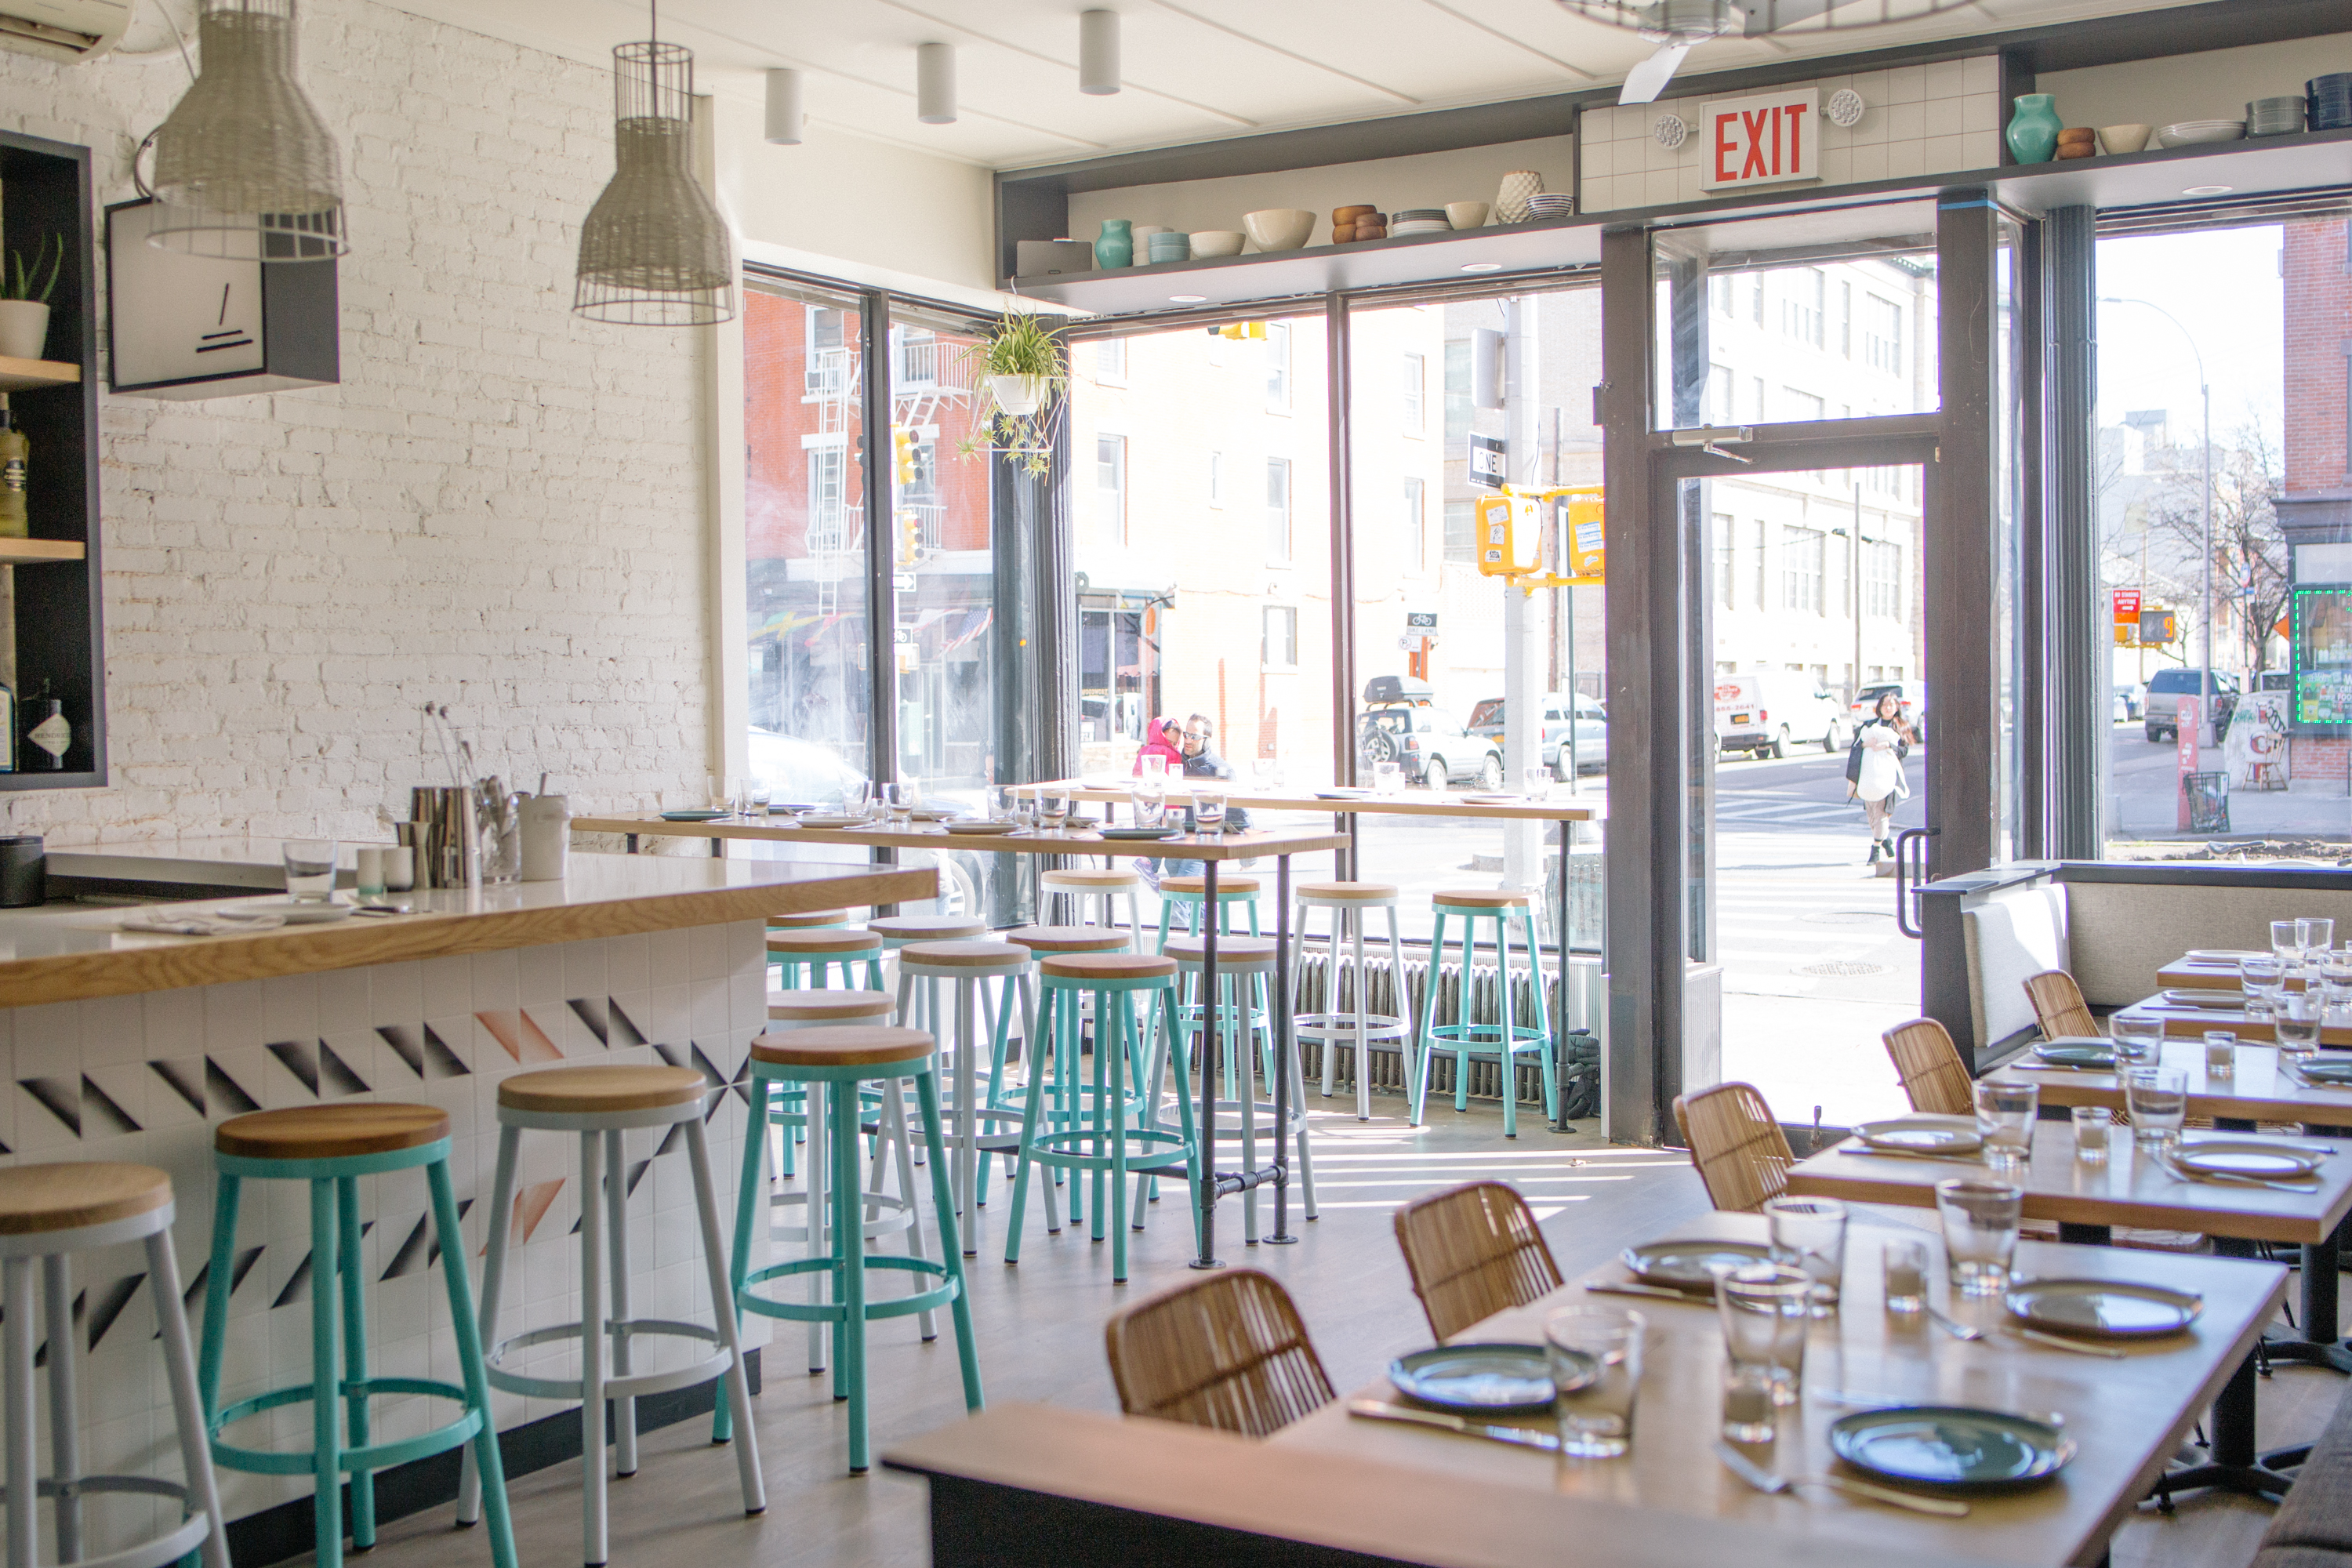 Alta Calidad's dining room has wood tables, turquoise blue stools, big front windows, and brick walls painted white